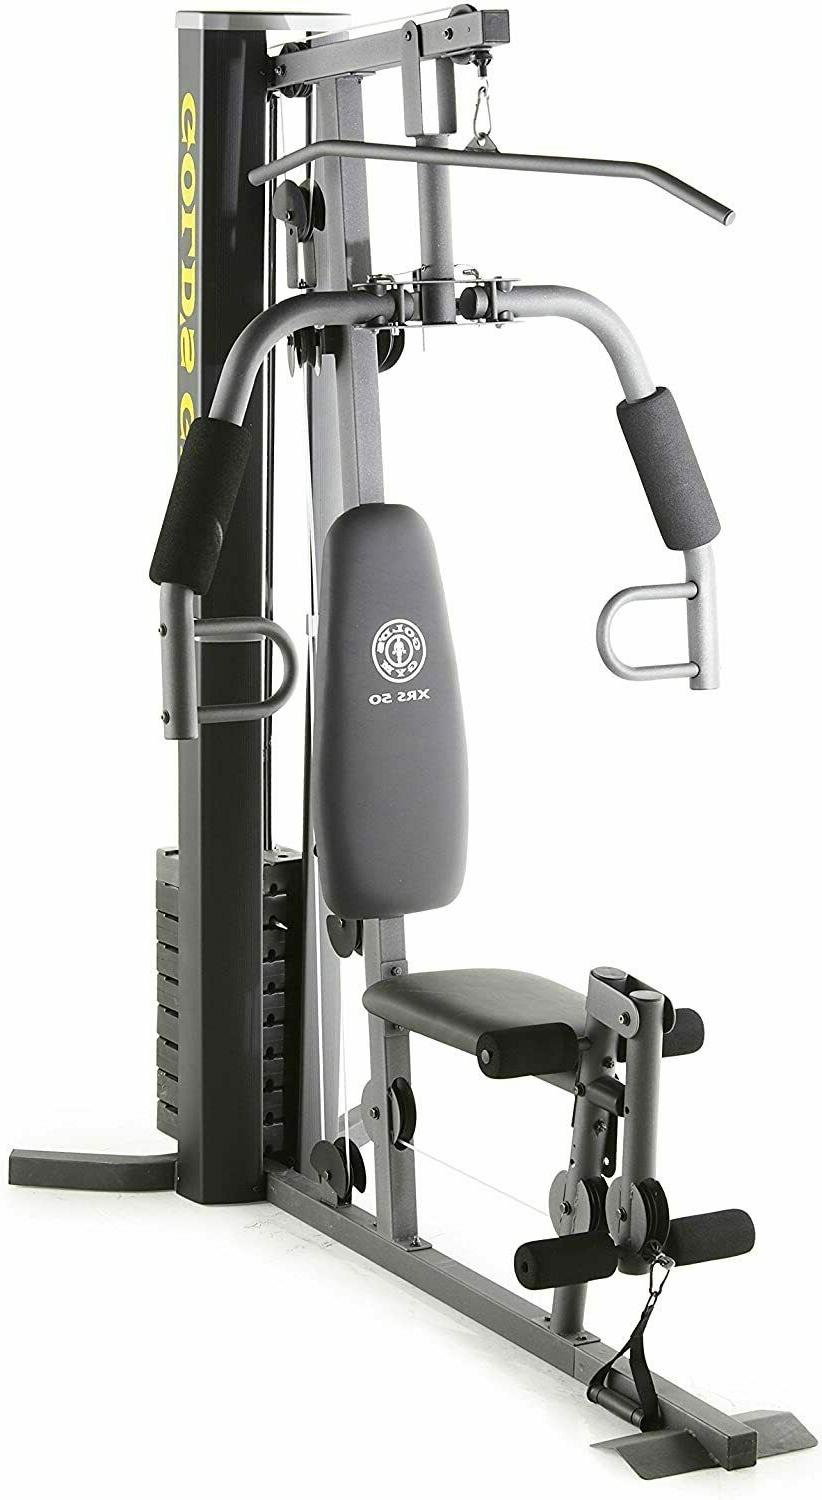 Home Gym System with 5 Workout Stations